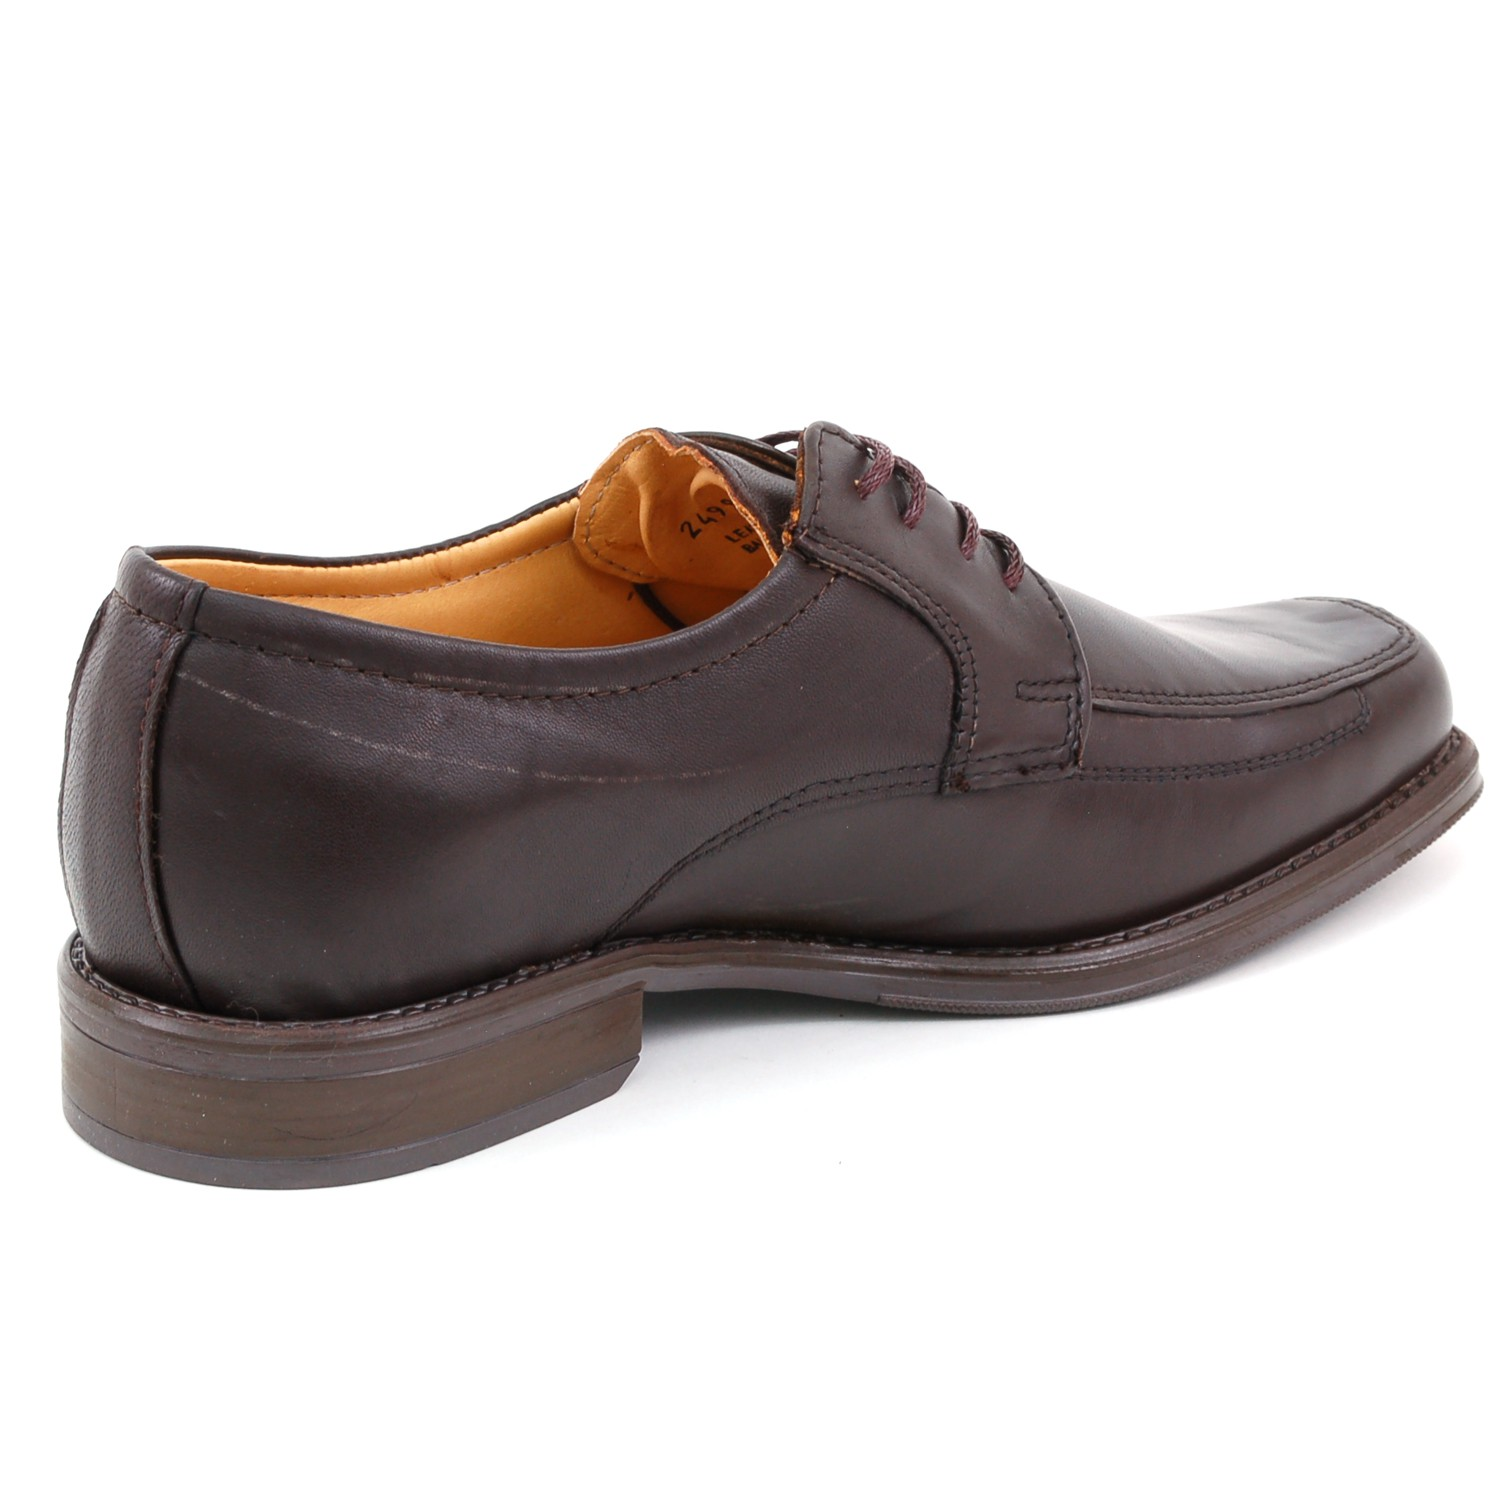 Mens-Lace-Up-Oxfords-Dress-Shoes-Genuine-Leather-Moc-Toe-Giorgio-Brutini-Padded thumbnail 16